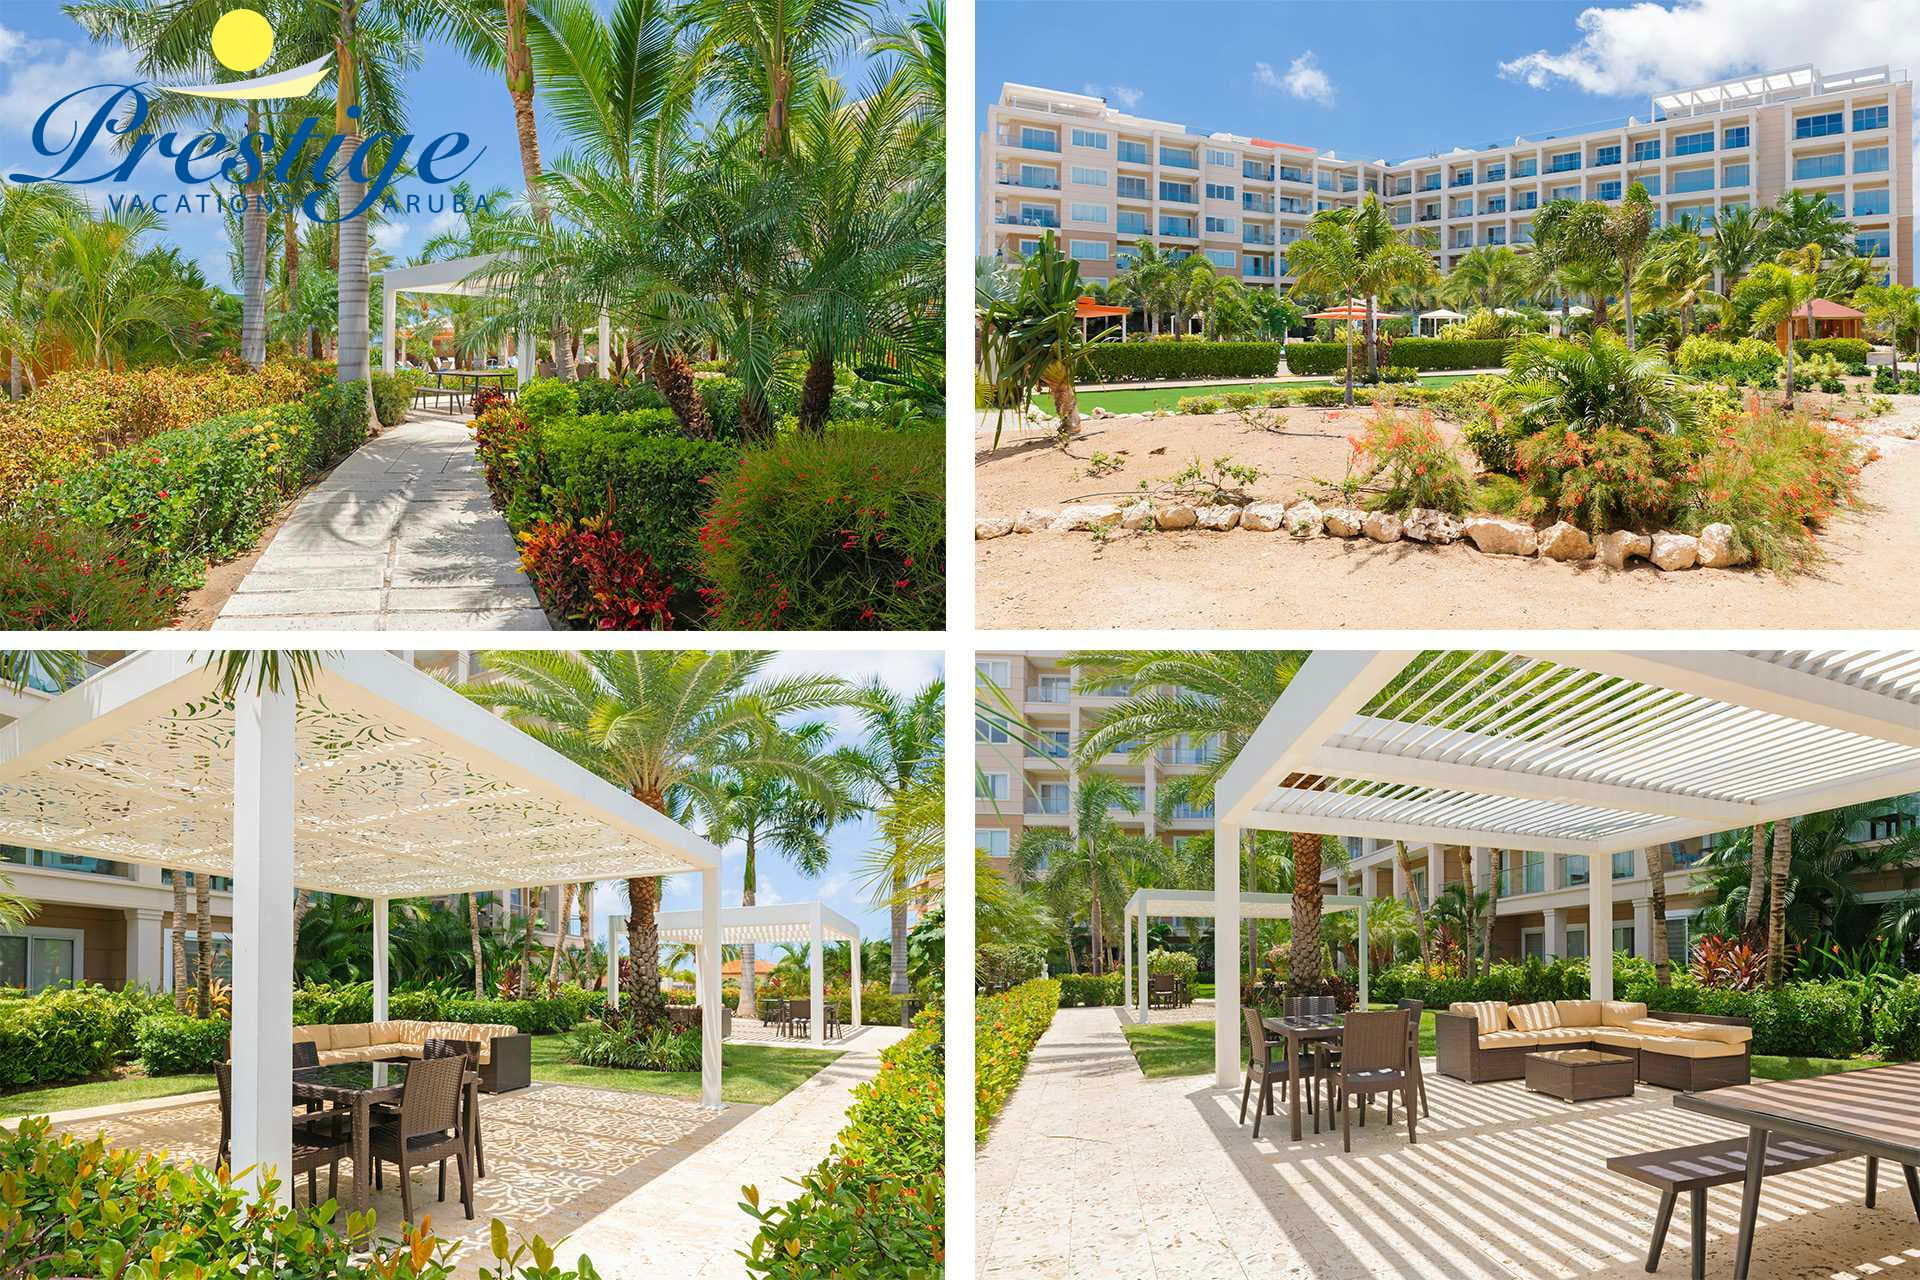 Enjoy the tranquility of the resort with its luscious tropical landscaping